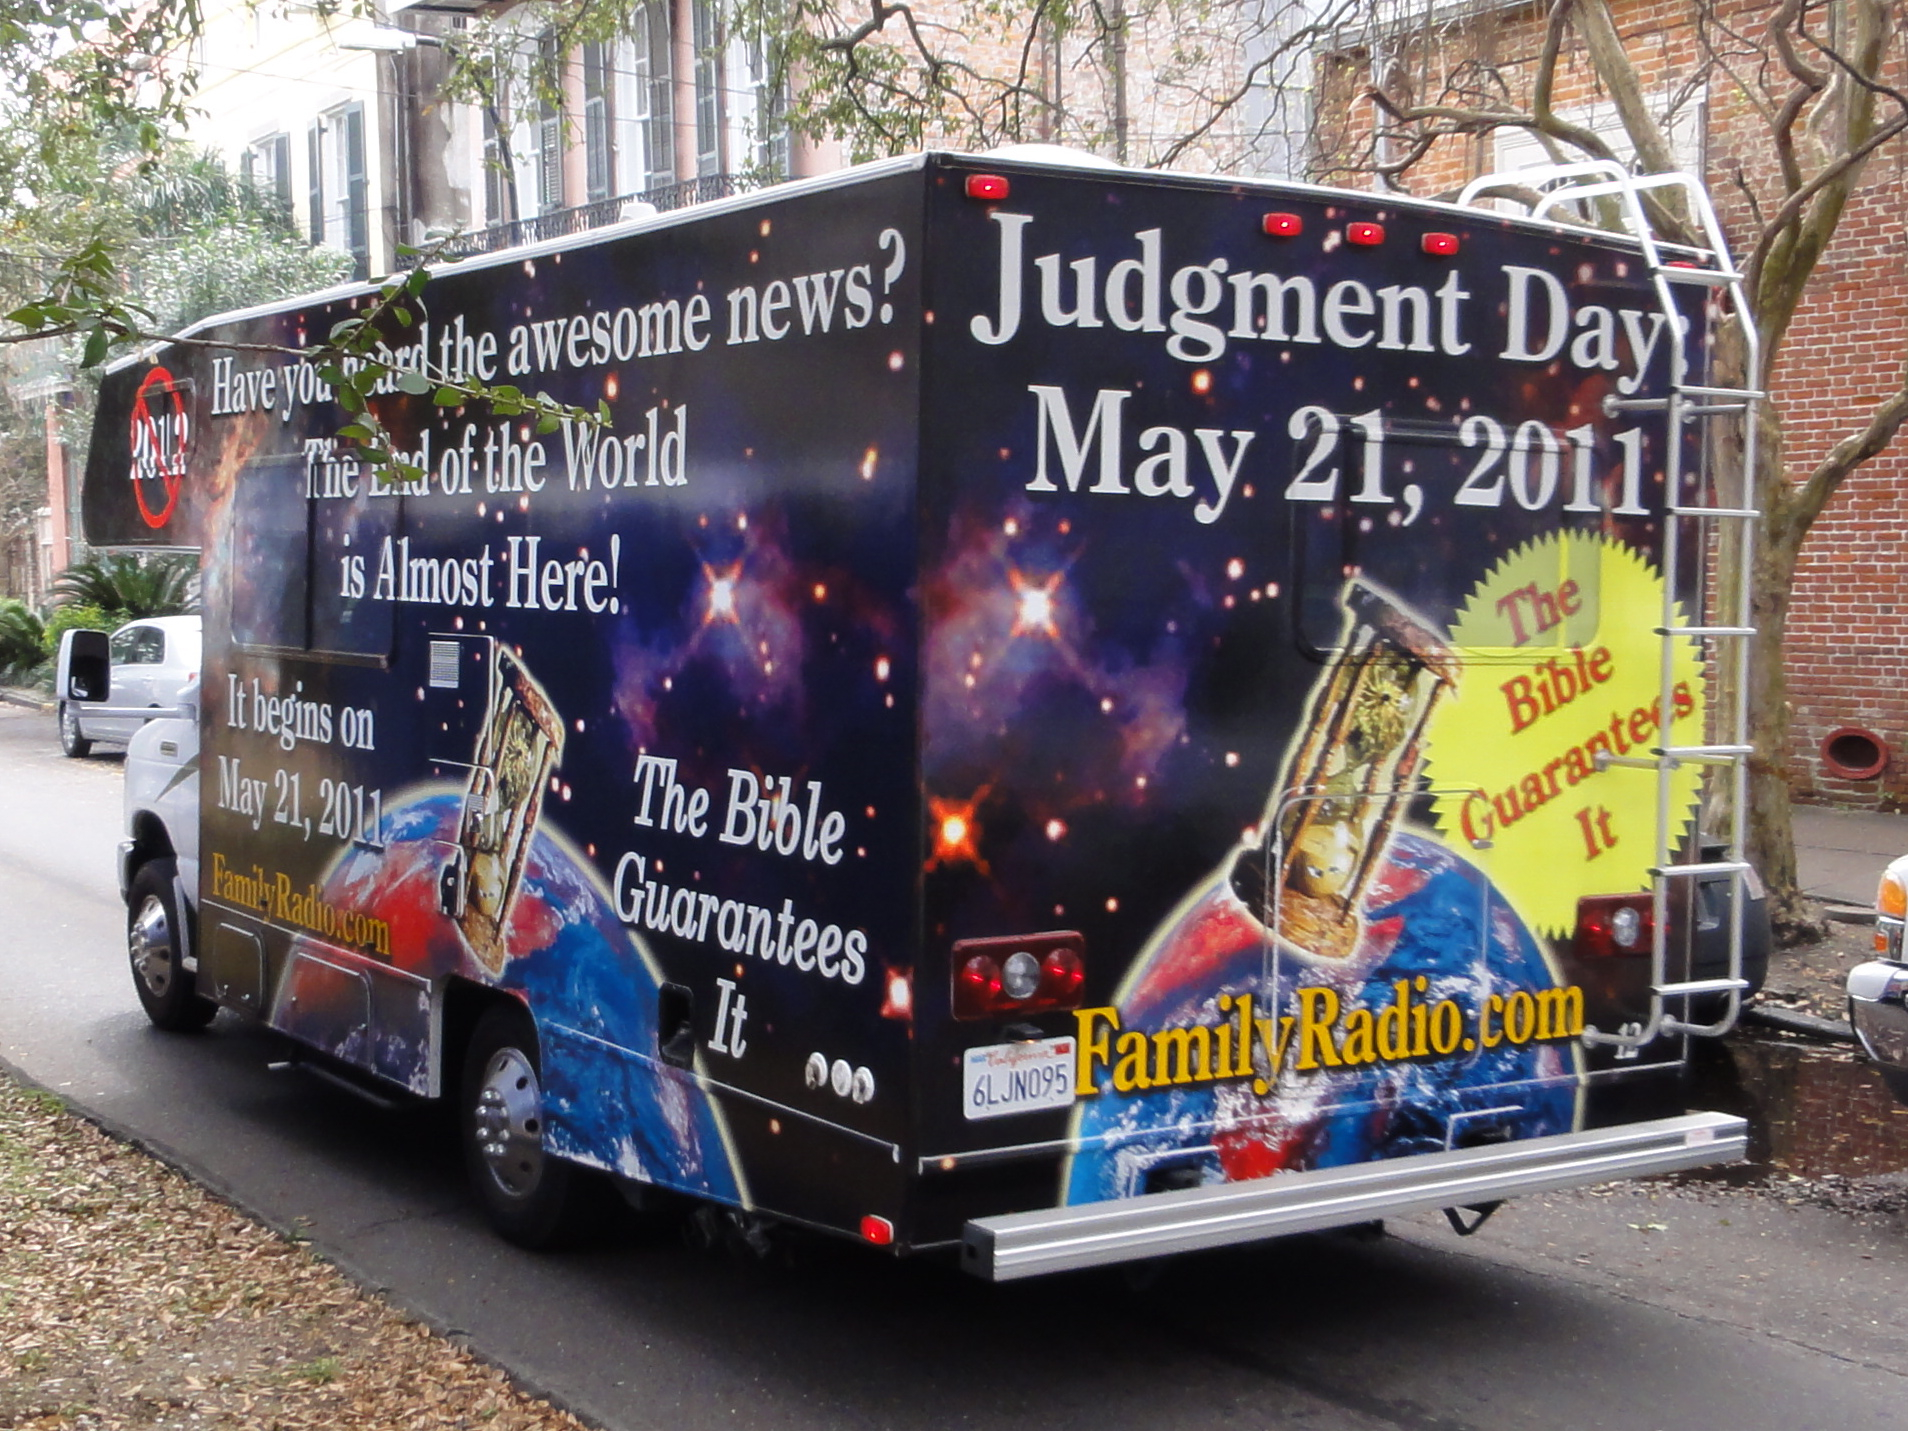 One of Harold Camping's ministry tools to get out the news that the world was ending on May 21st, 2011. By Bart Everson - Flickr: Judgment Bus, CC BY 2.0, https://commons.wikimedia.org/w/index.php?curid=14734037